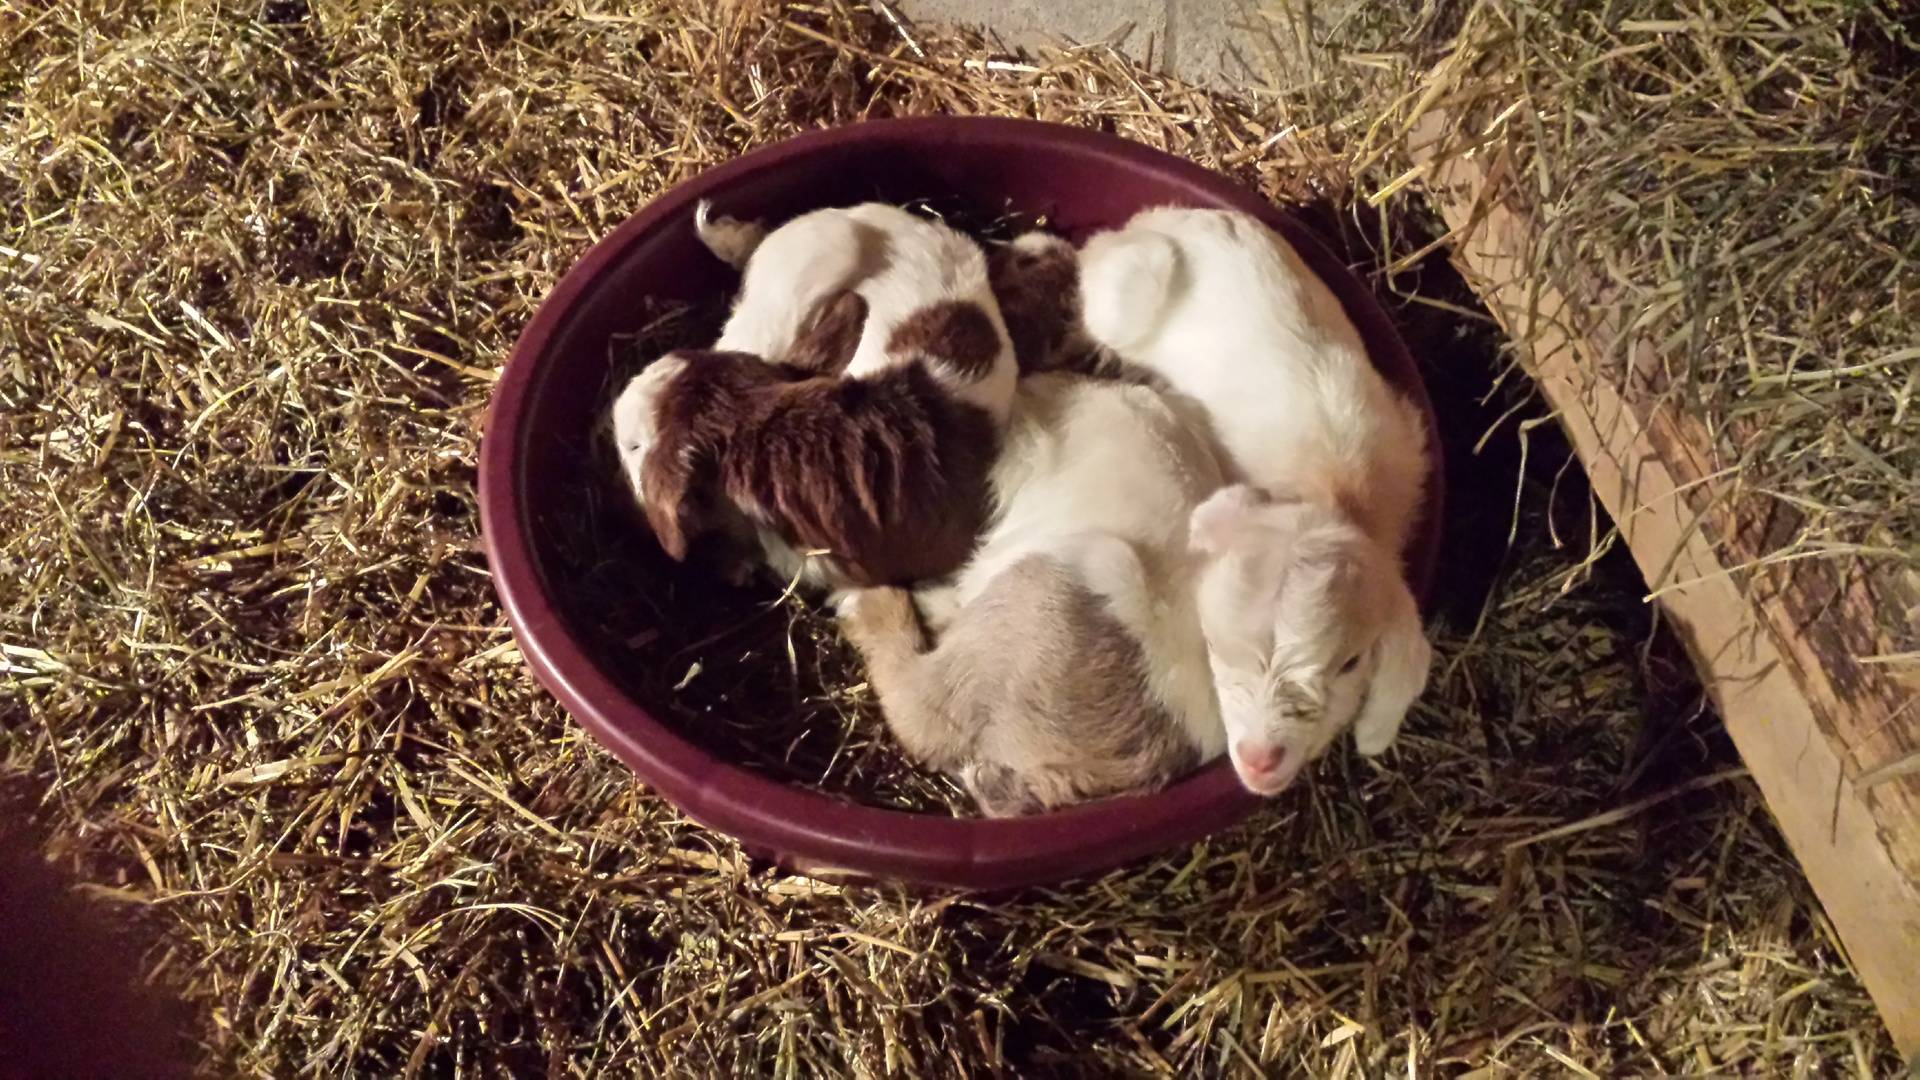 3 Goats in a tub!